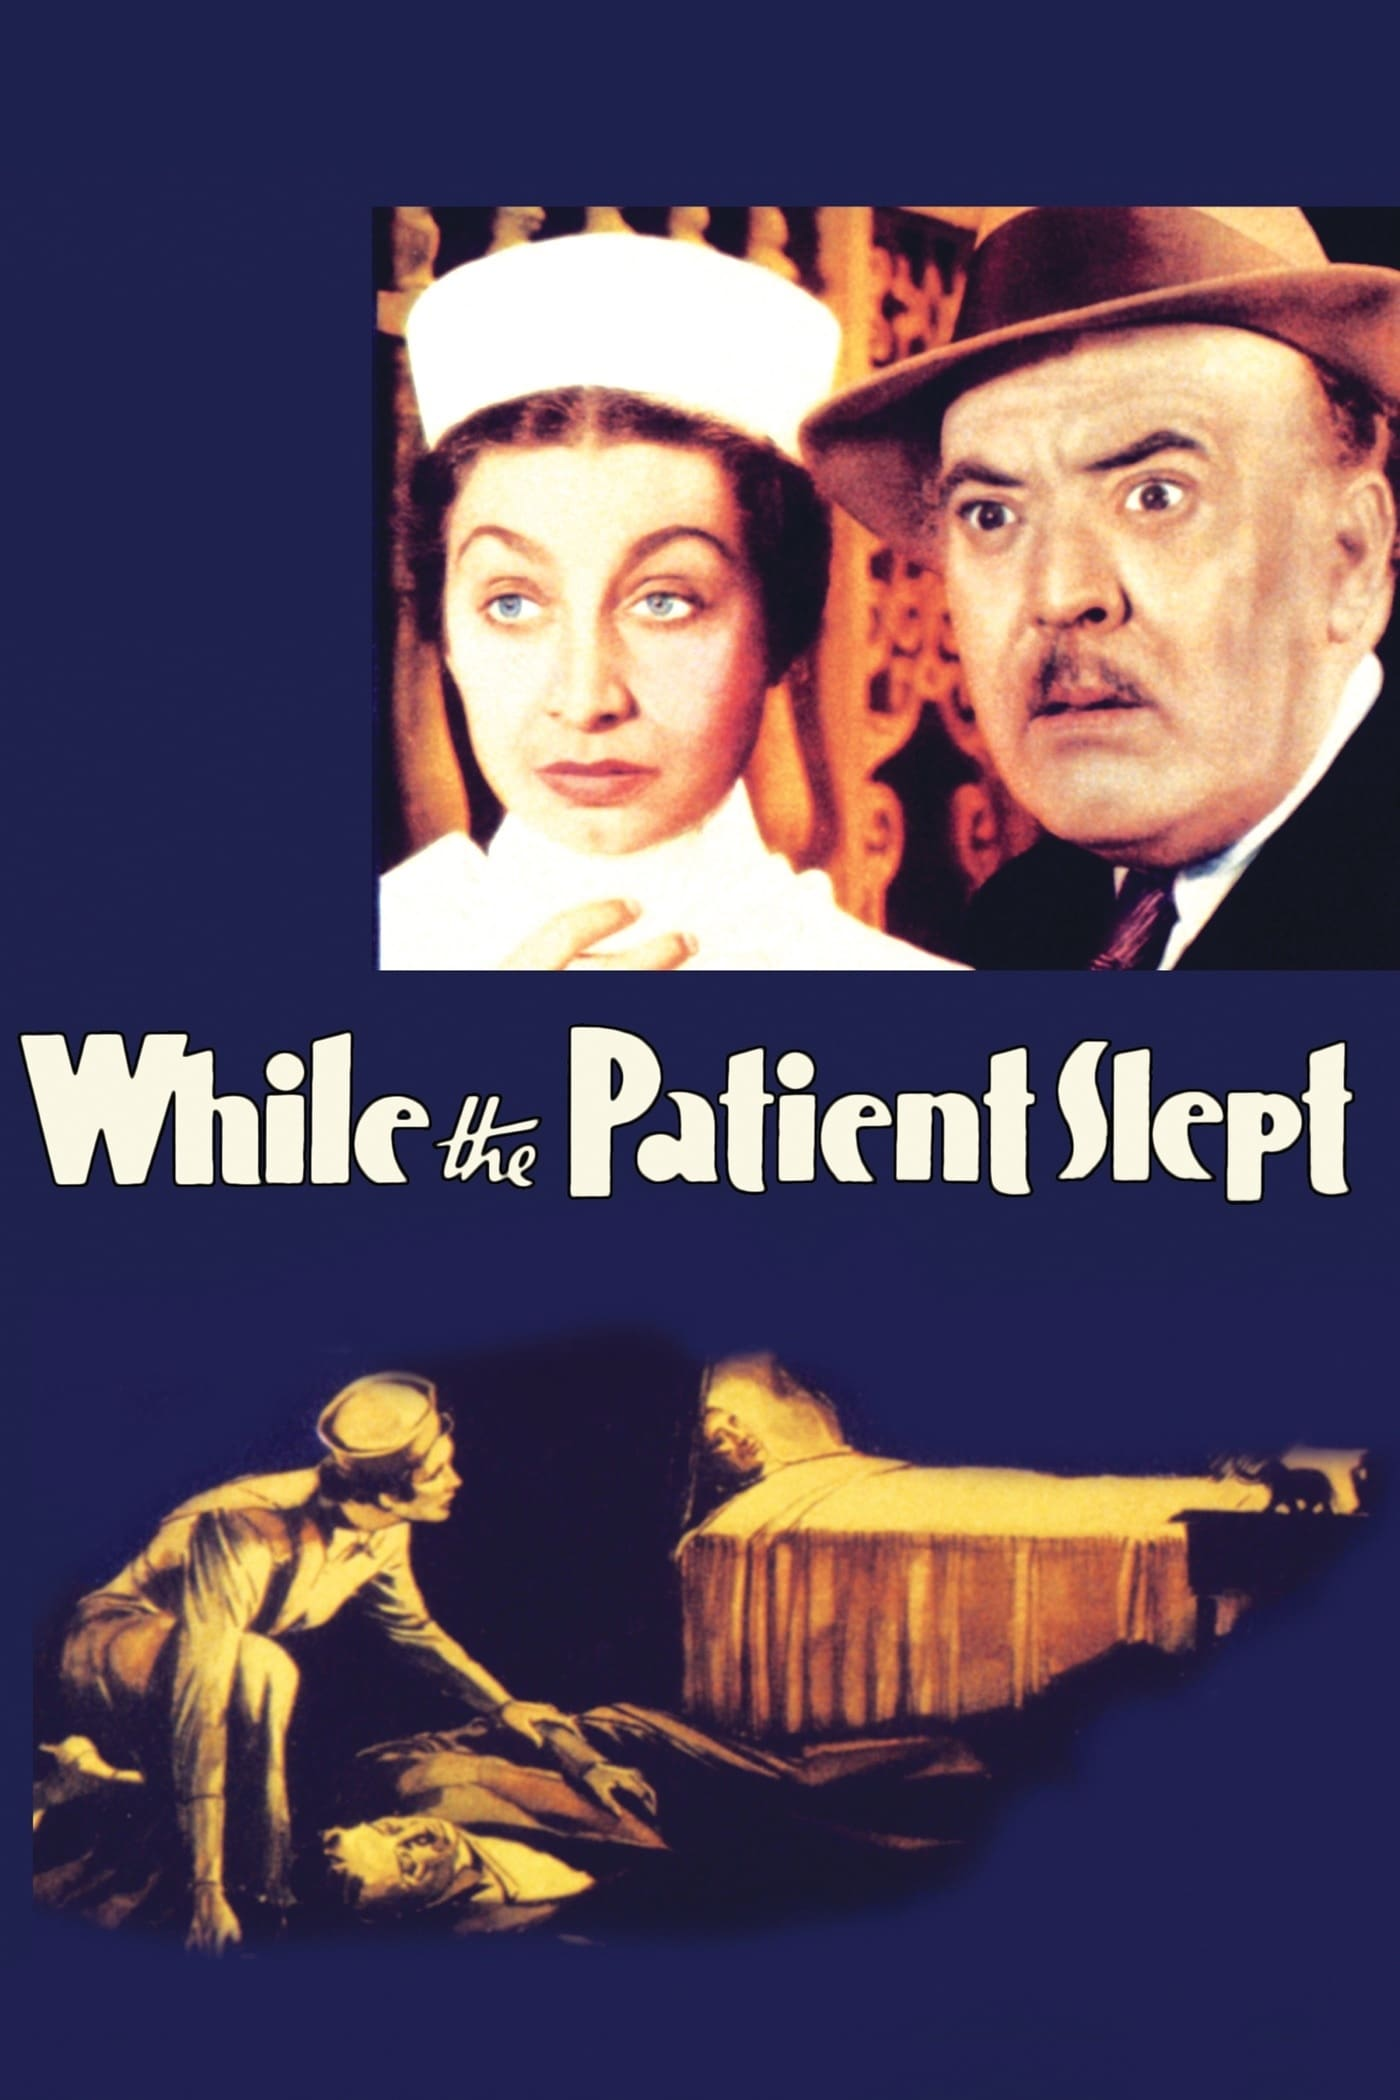 While the Patient Slept (1935)